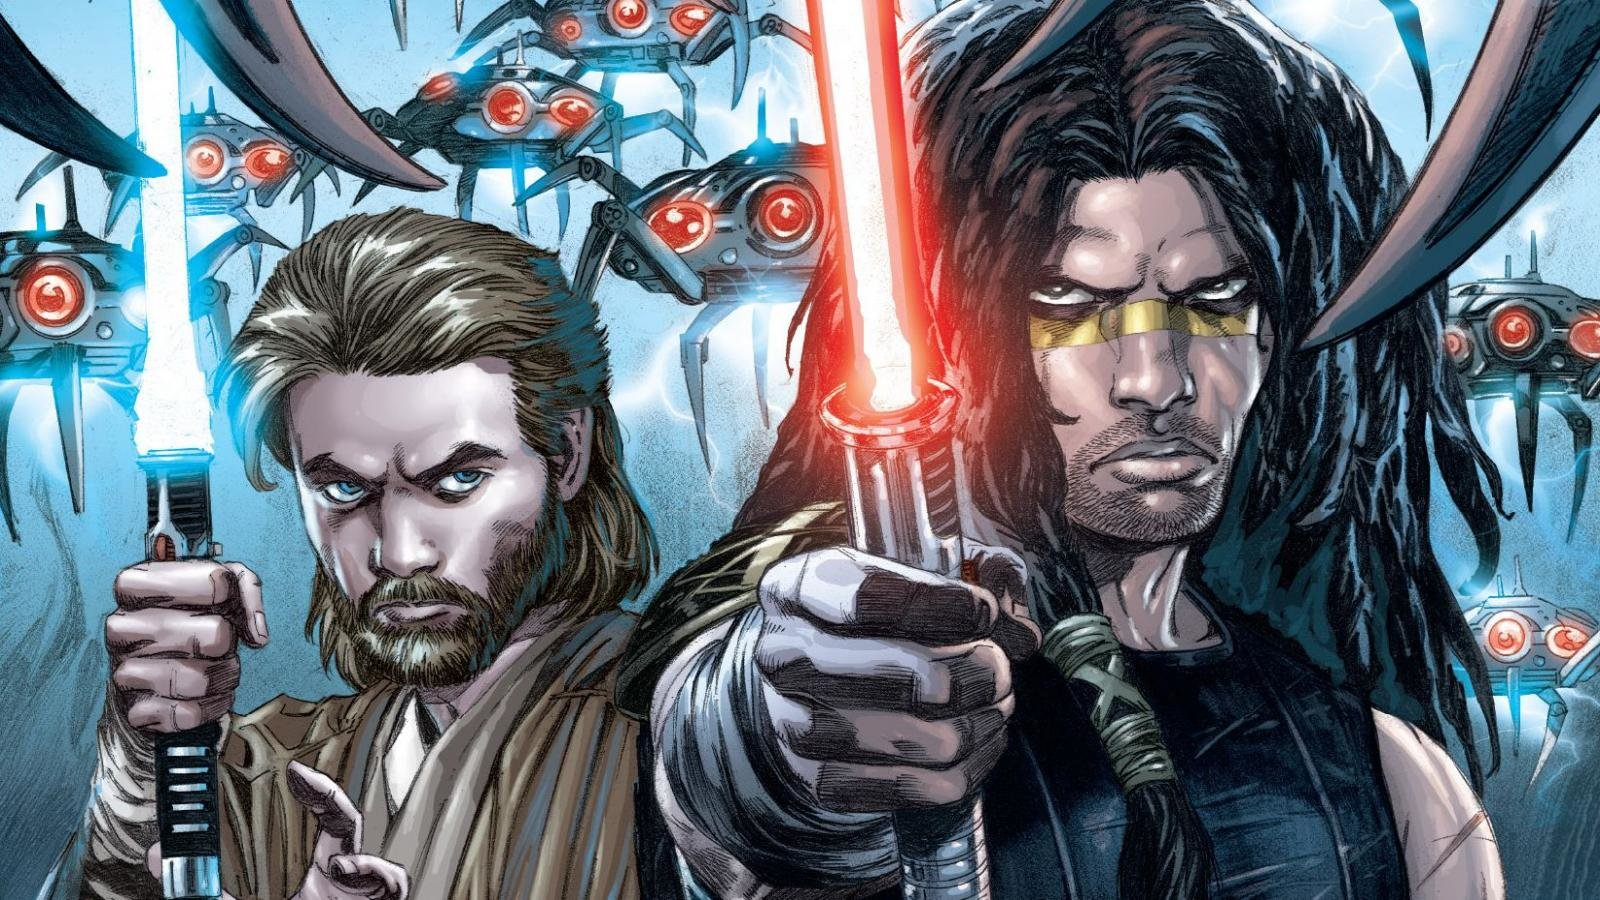 Free Star Wars Comics High Quality Wallpaper Id55907 For Hd 1600x900 Pc